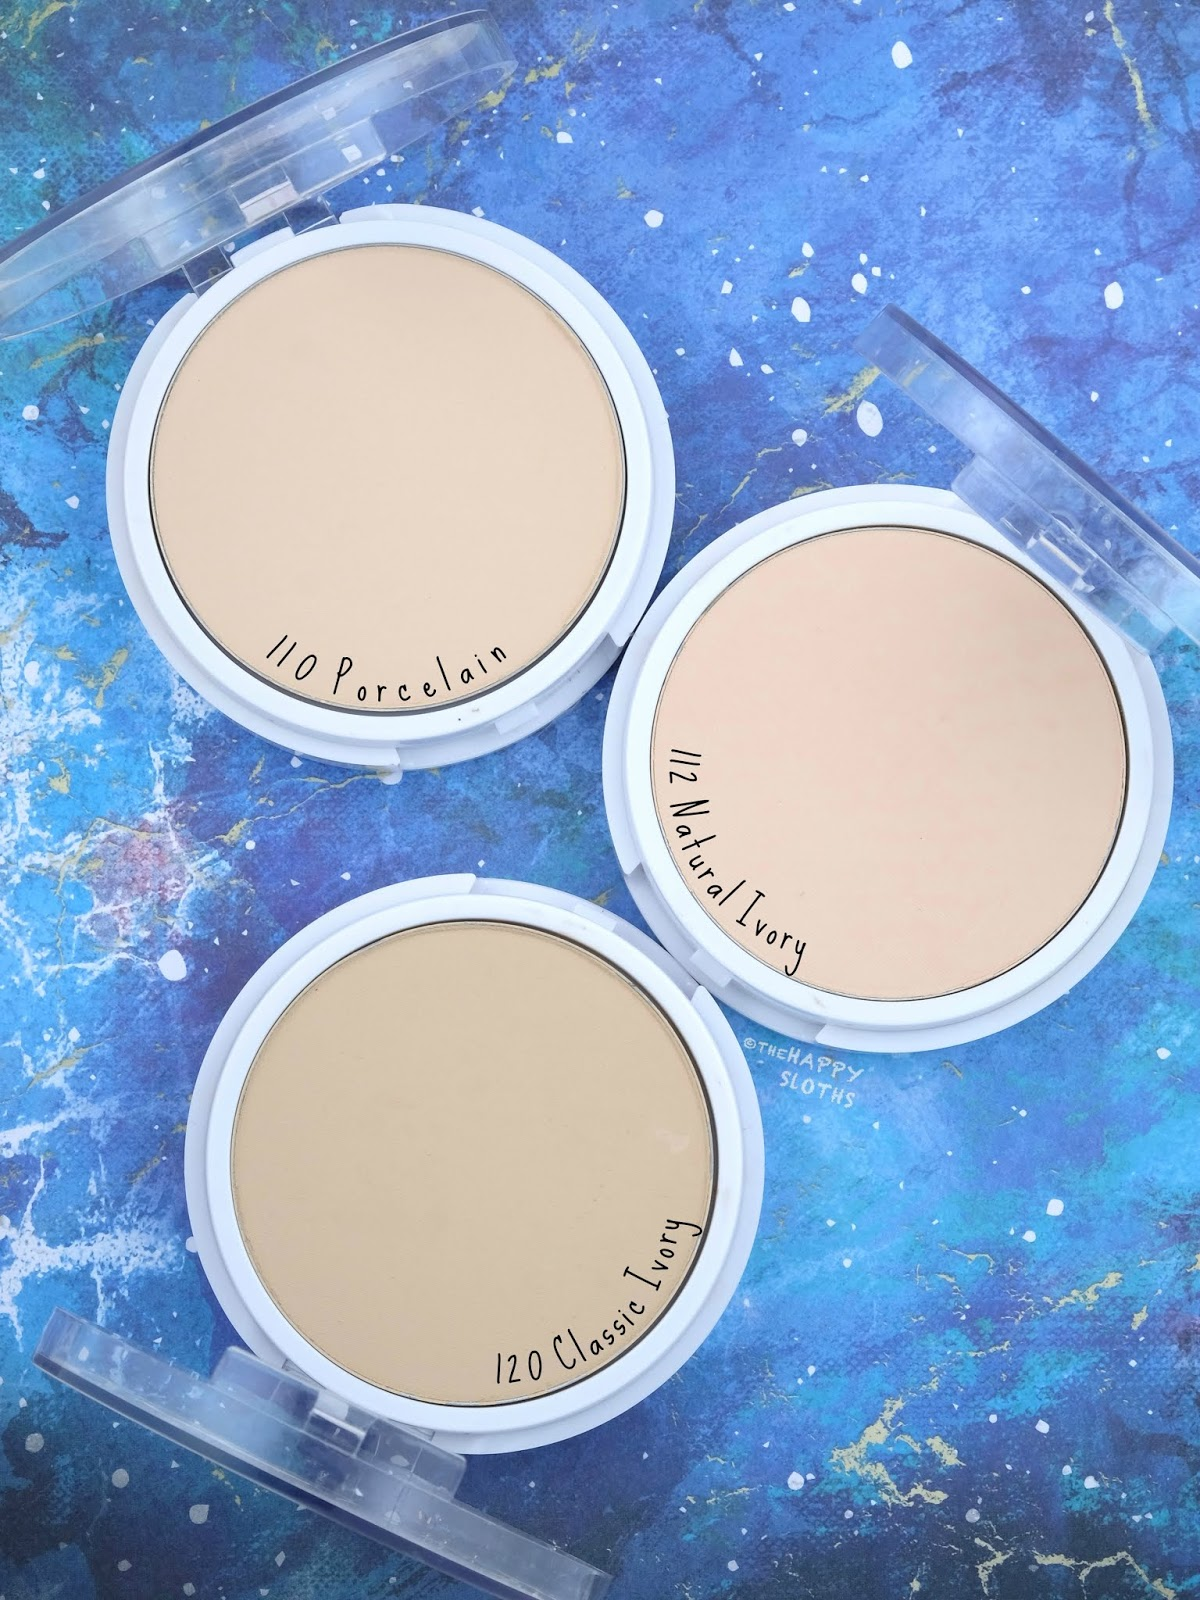 Maybelline | SuperStay Full Coverage Powder Foundation: Review and Swatches